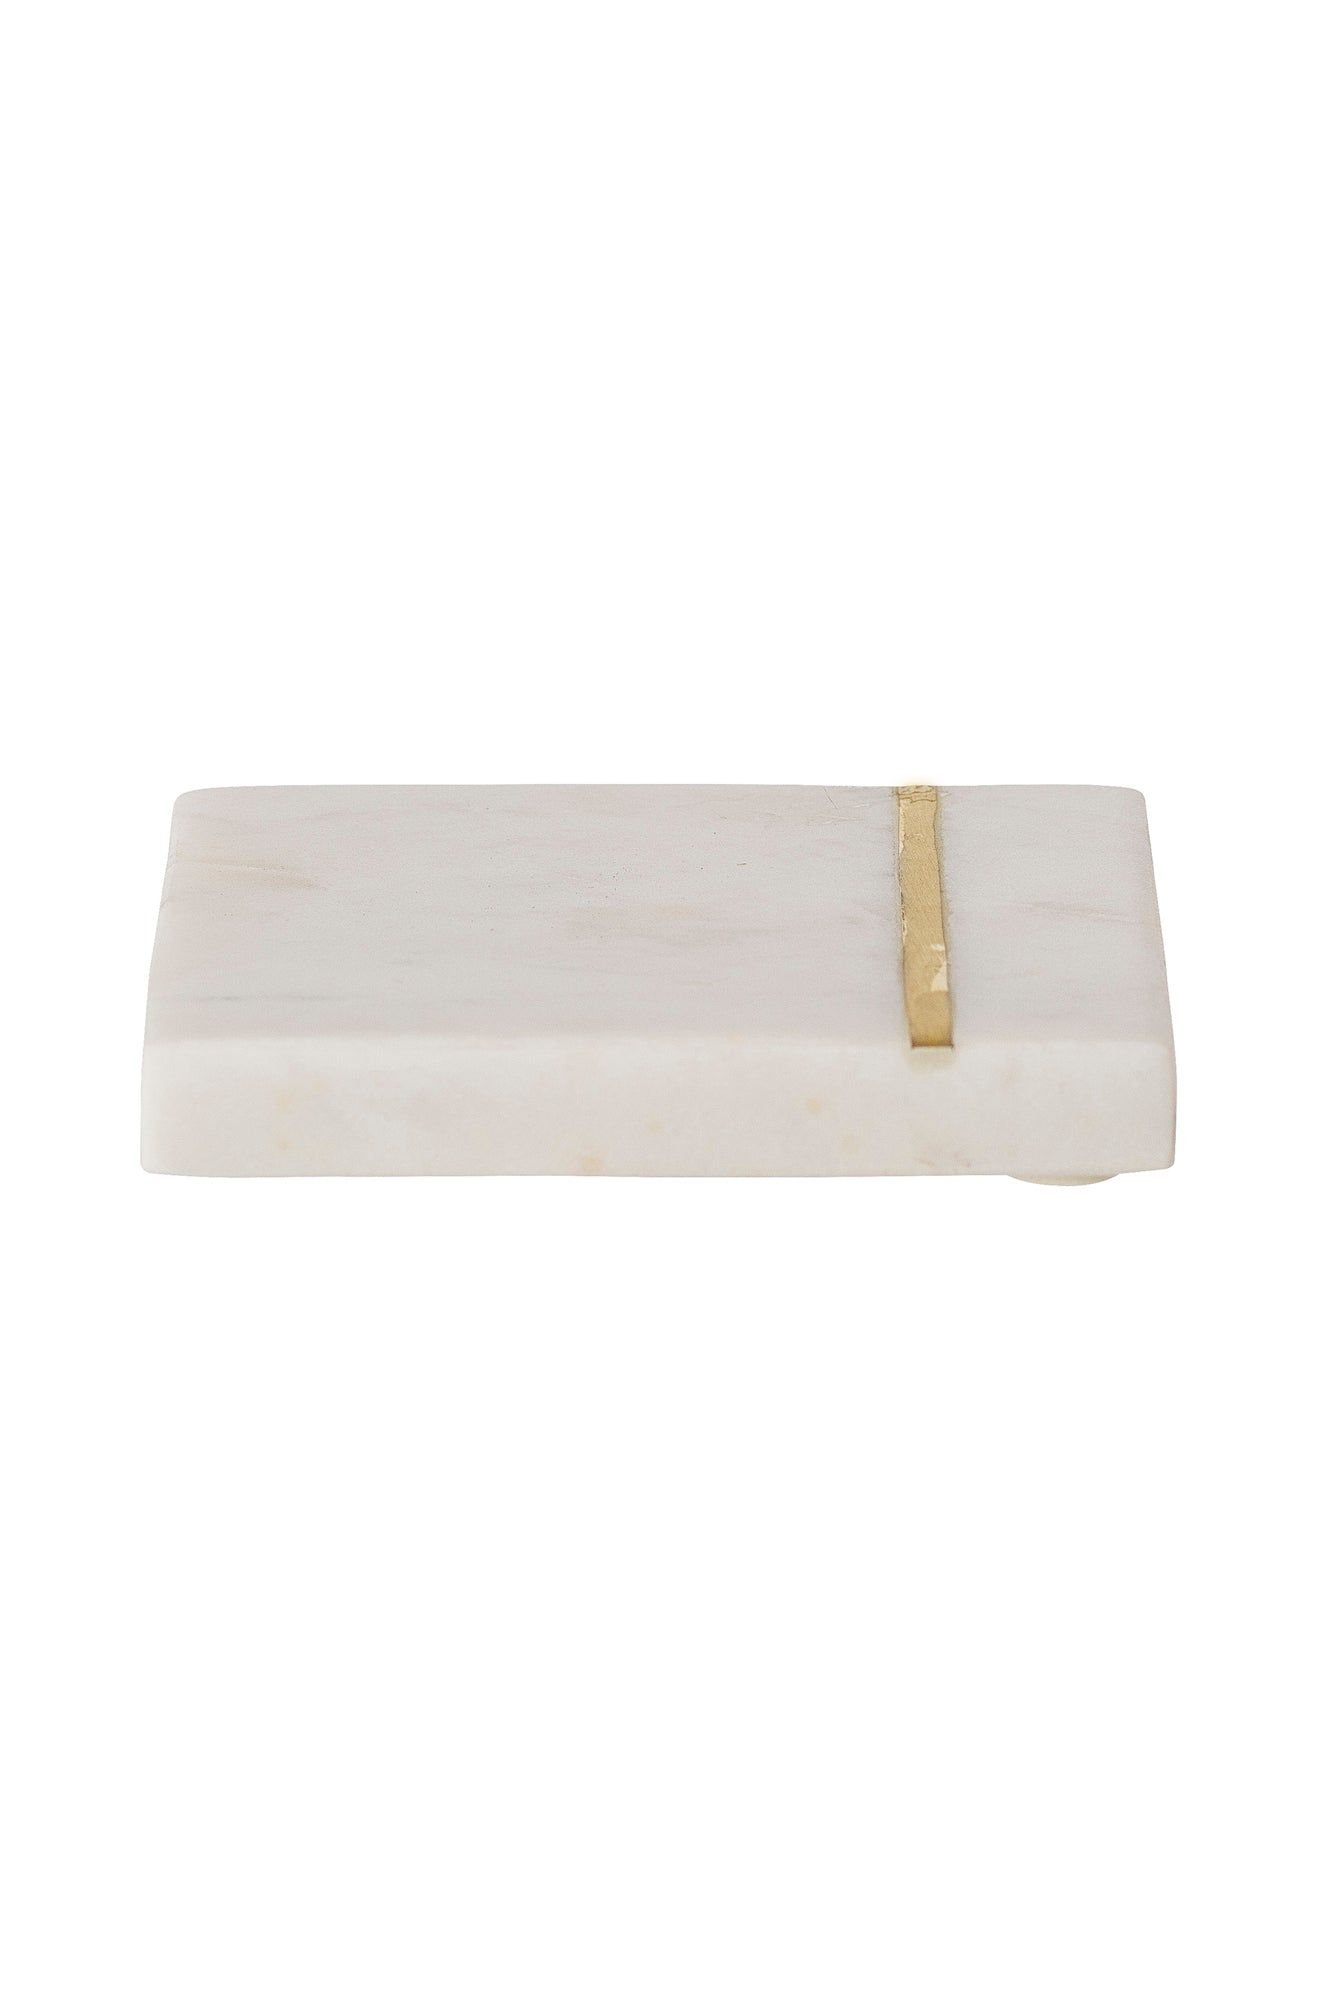 Golden Line White Marble, Drinkware, Bloomingville - 3LittlePicks